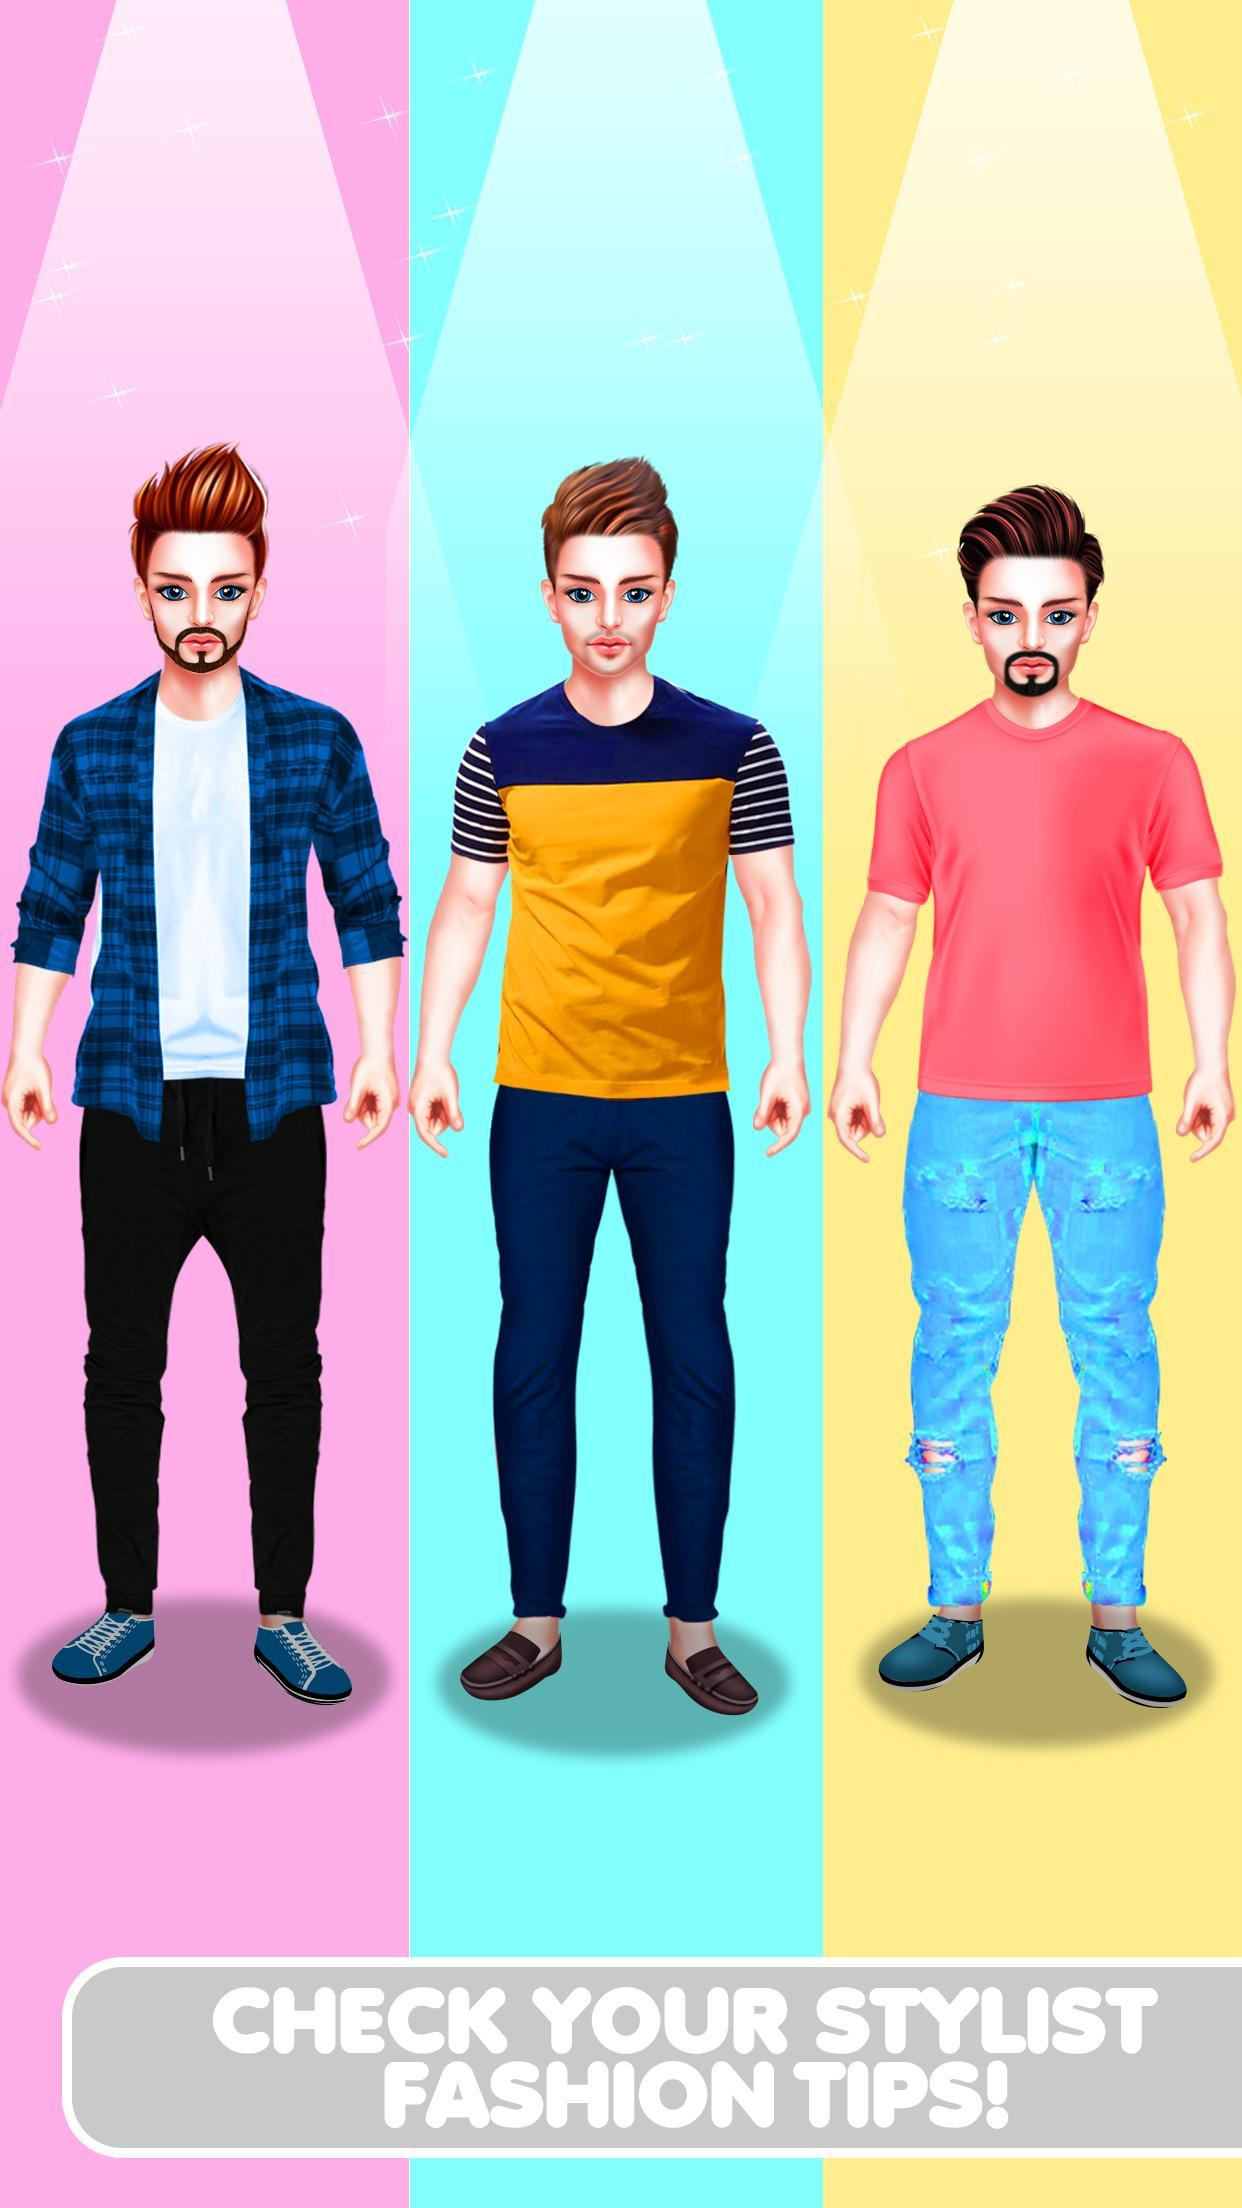 Celebrity fashion designer: Royal makeover Salon 1.8 Screenshot 2